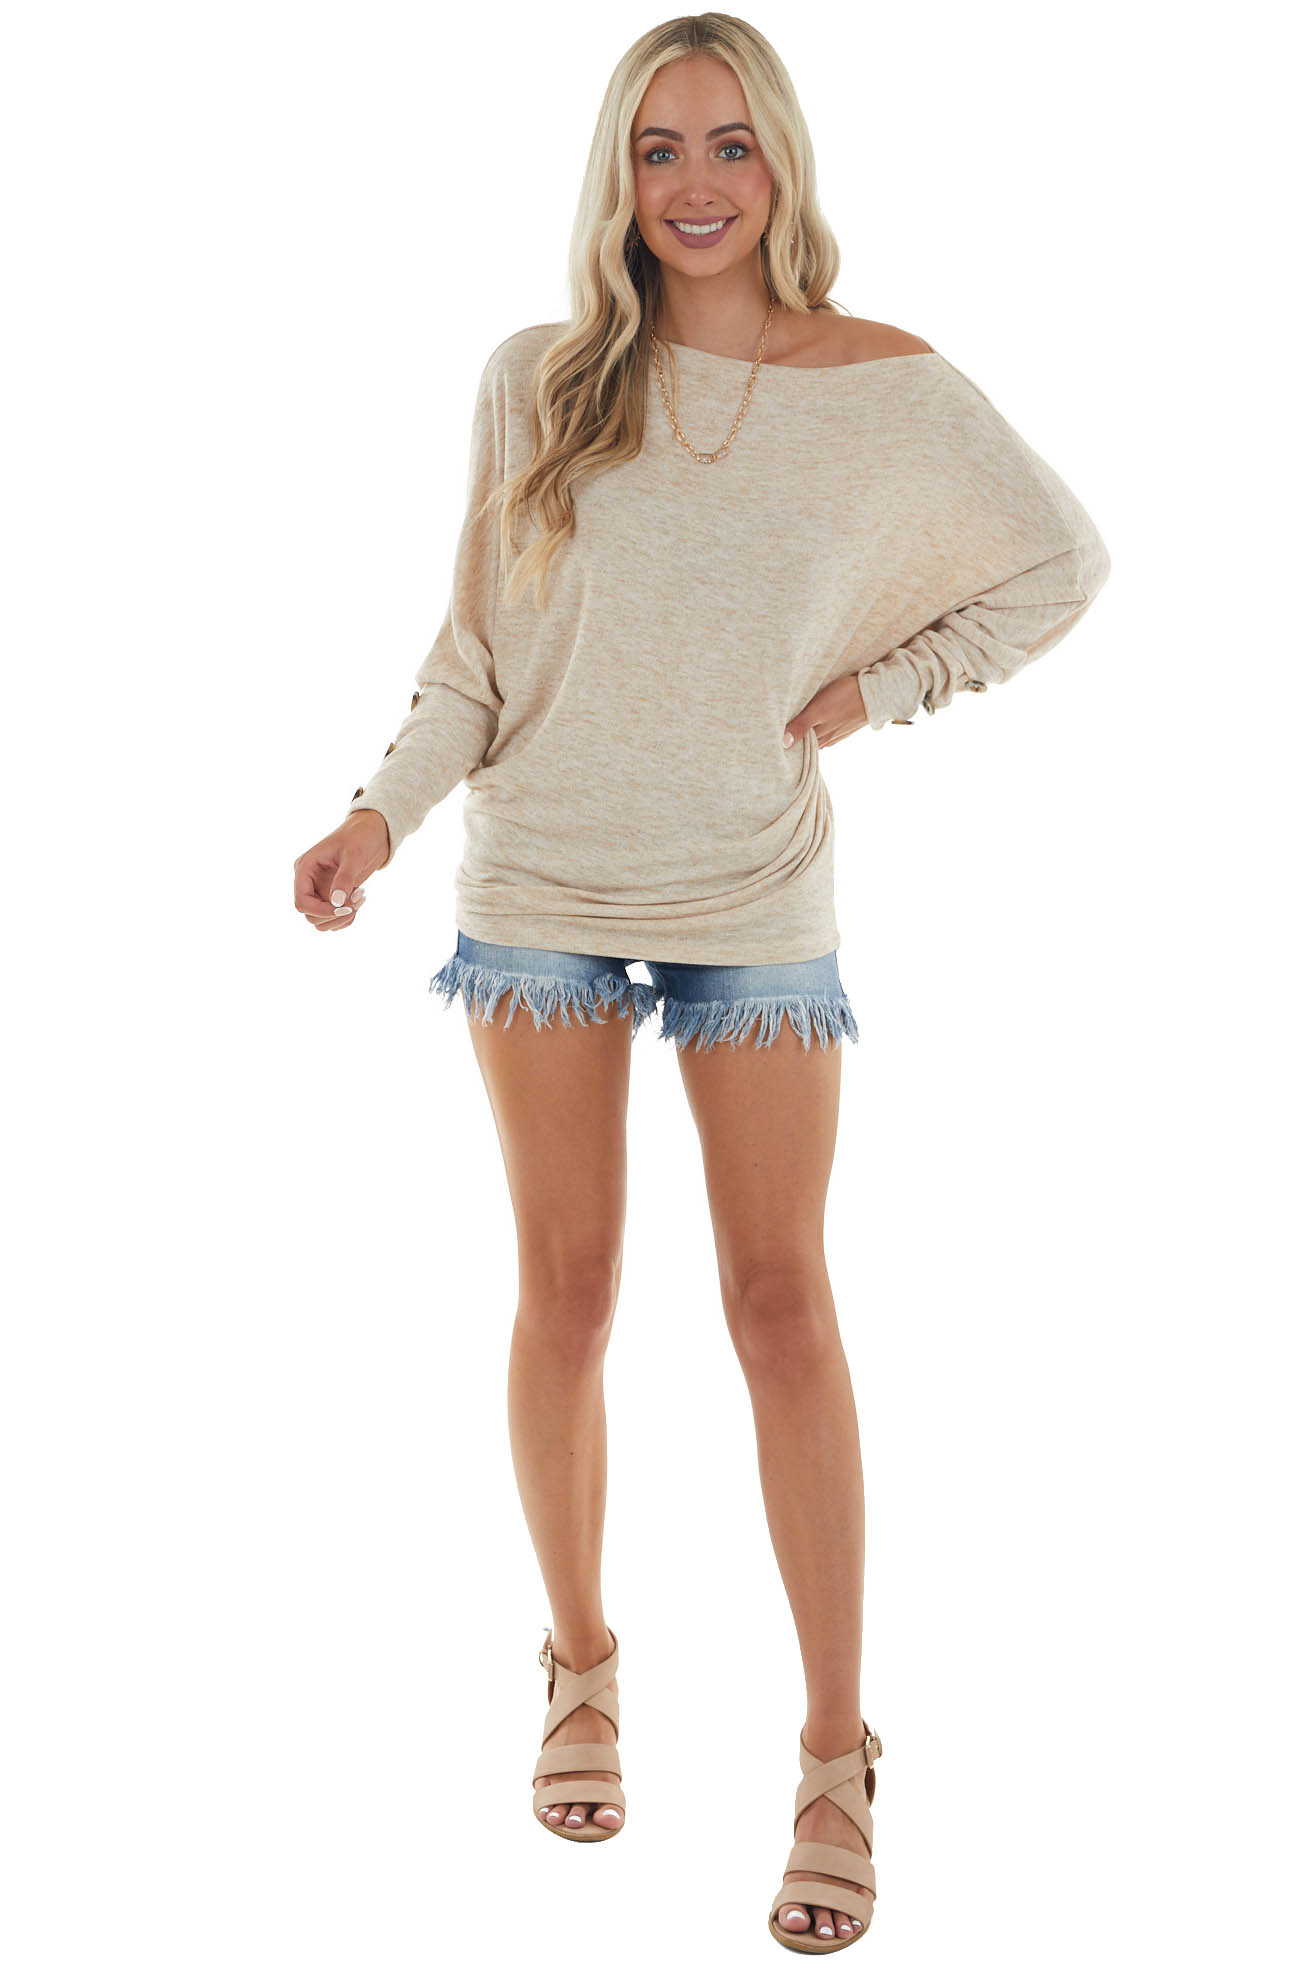 Oatmeal Dolman Sleeve Off Shoulder Top with Button Detail